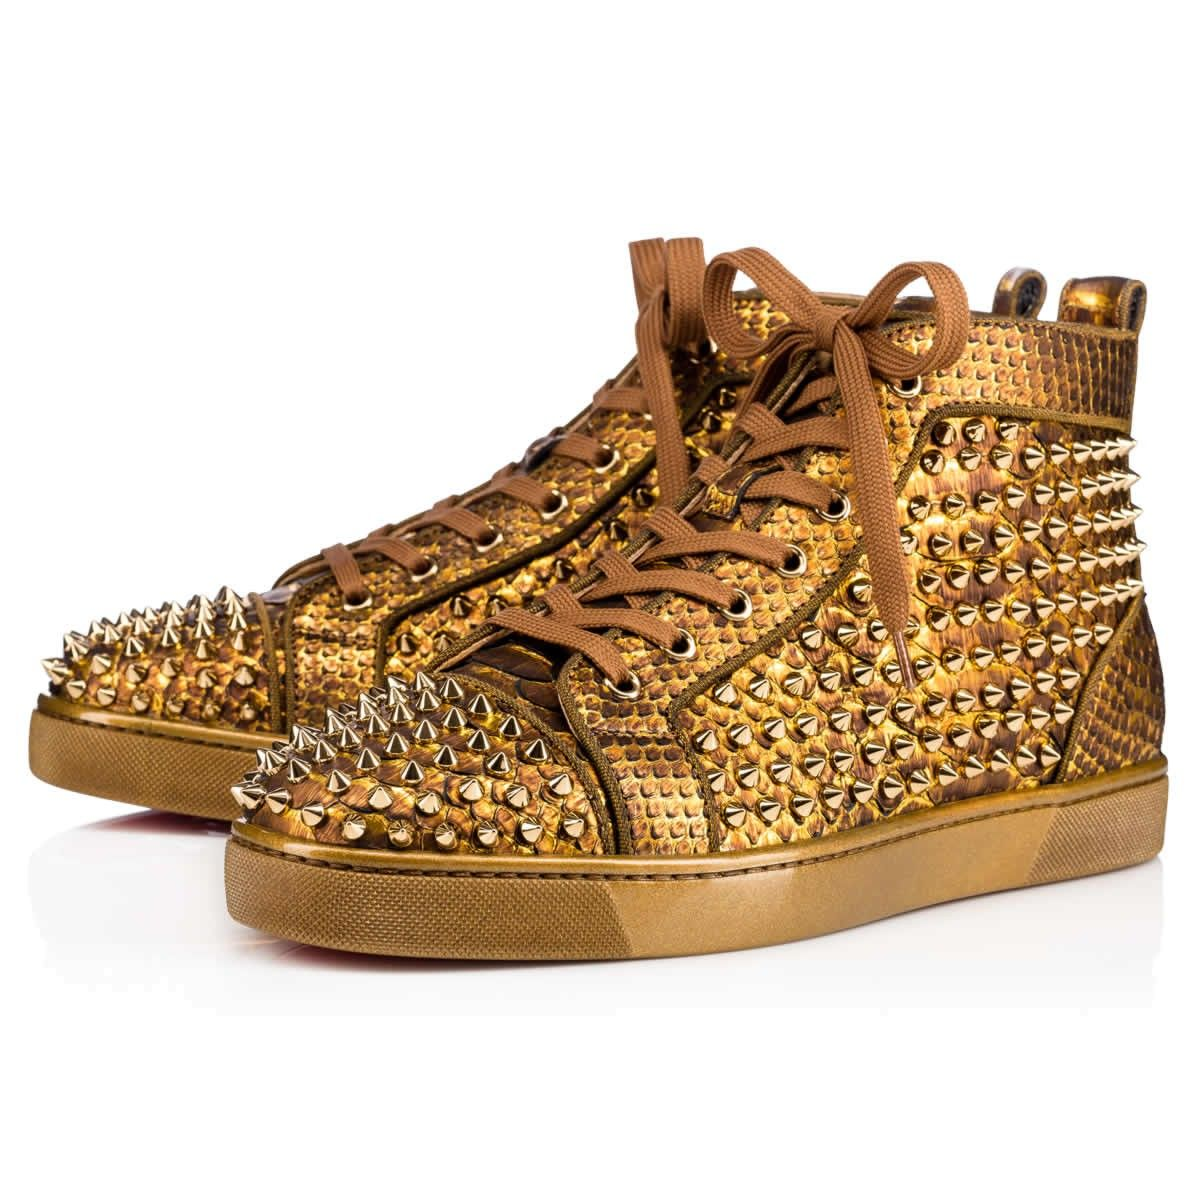 7fe3a77eb99 CHRISTIAN LOUBOUTIN Louis Spikes Orlato Flat Antic Gold Python Cuirasse - Men  Shoes - Christian Louboutin.  christianlouboutin  shoes